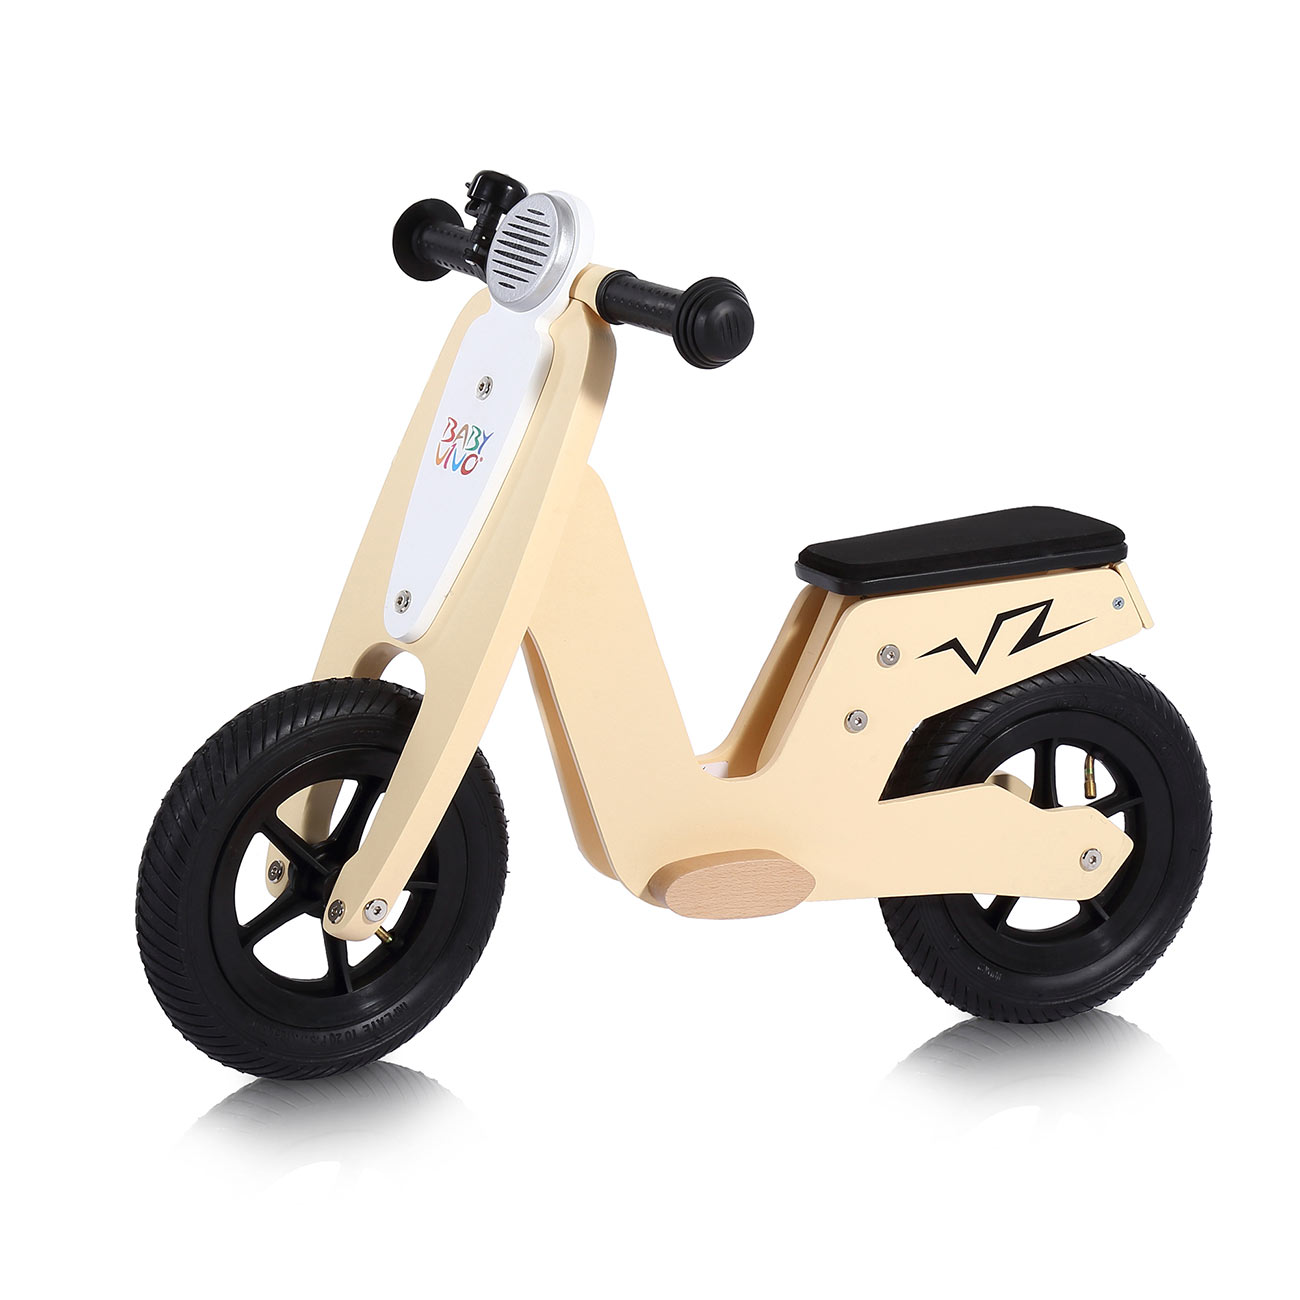 baby vivo balance bike draisienne pour enfants en bois 10 pouce capri b b enfant jouets. Black Bedroom Furniture Sets. Home Design Ideas